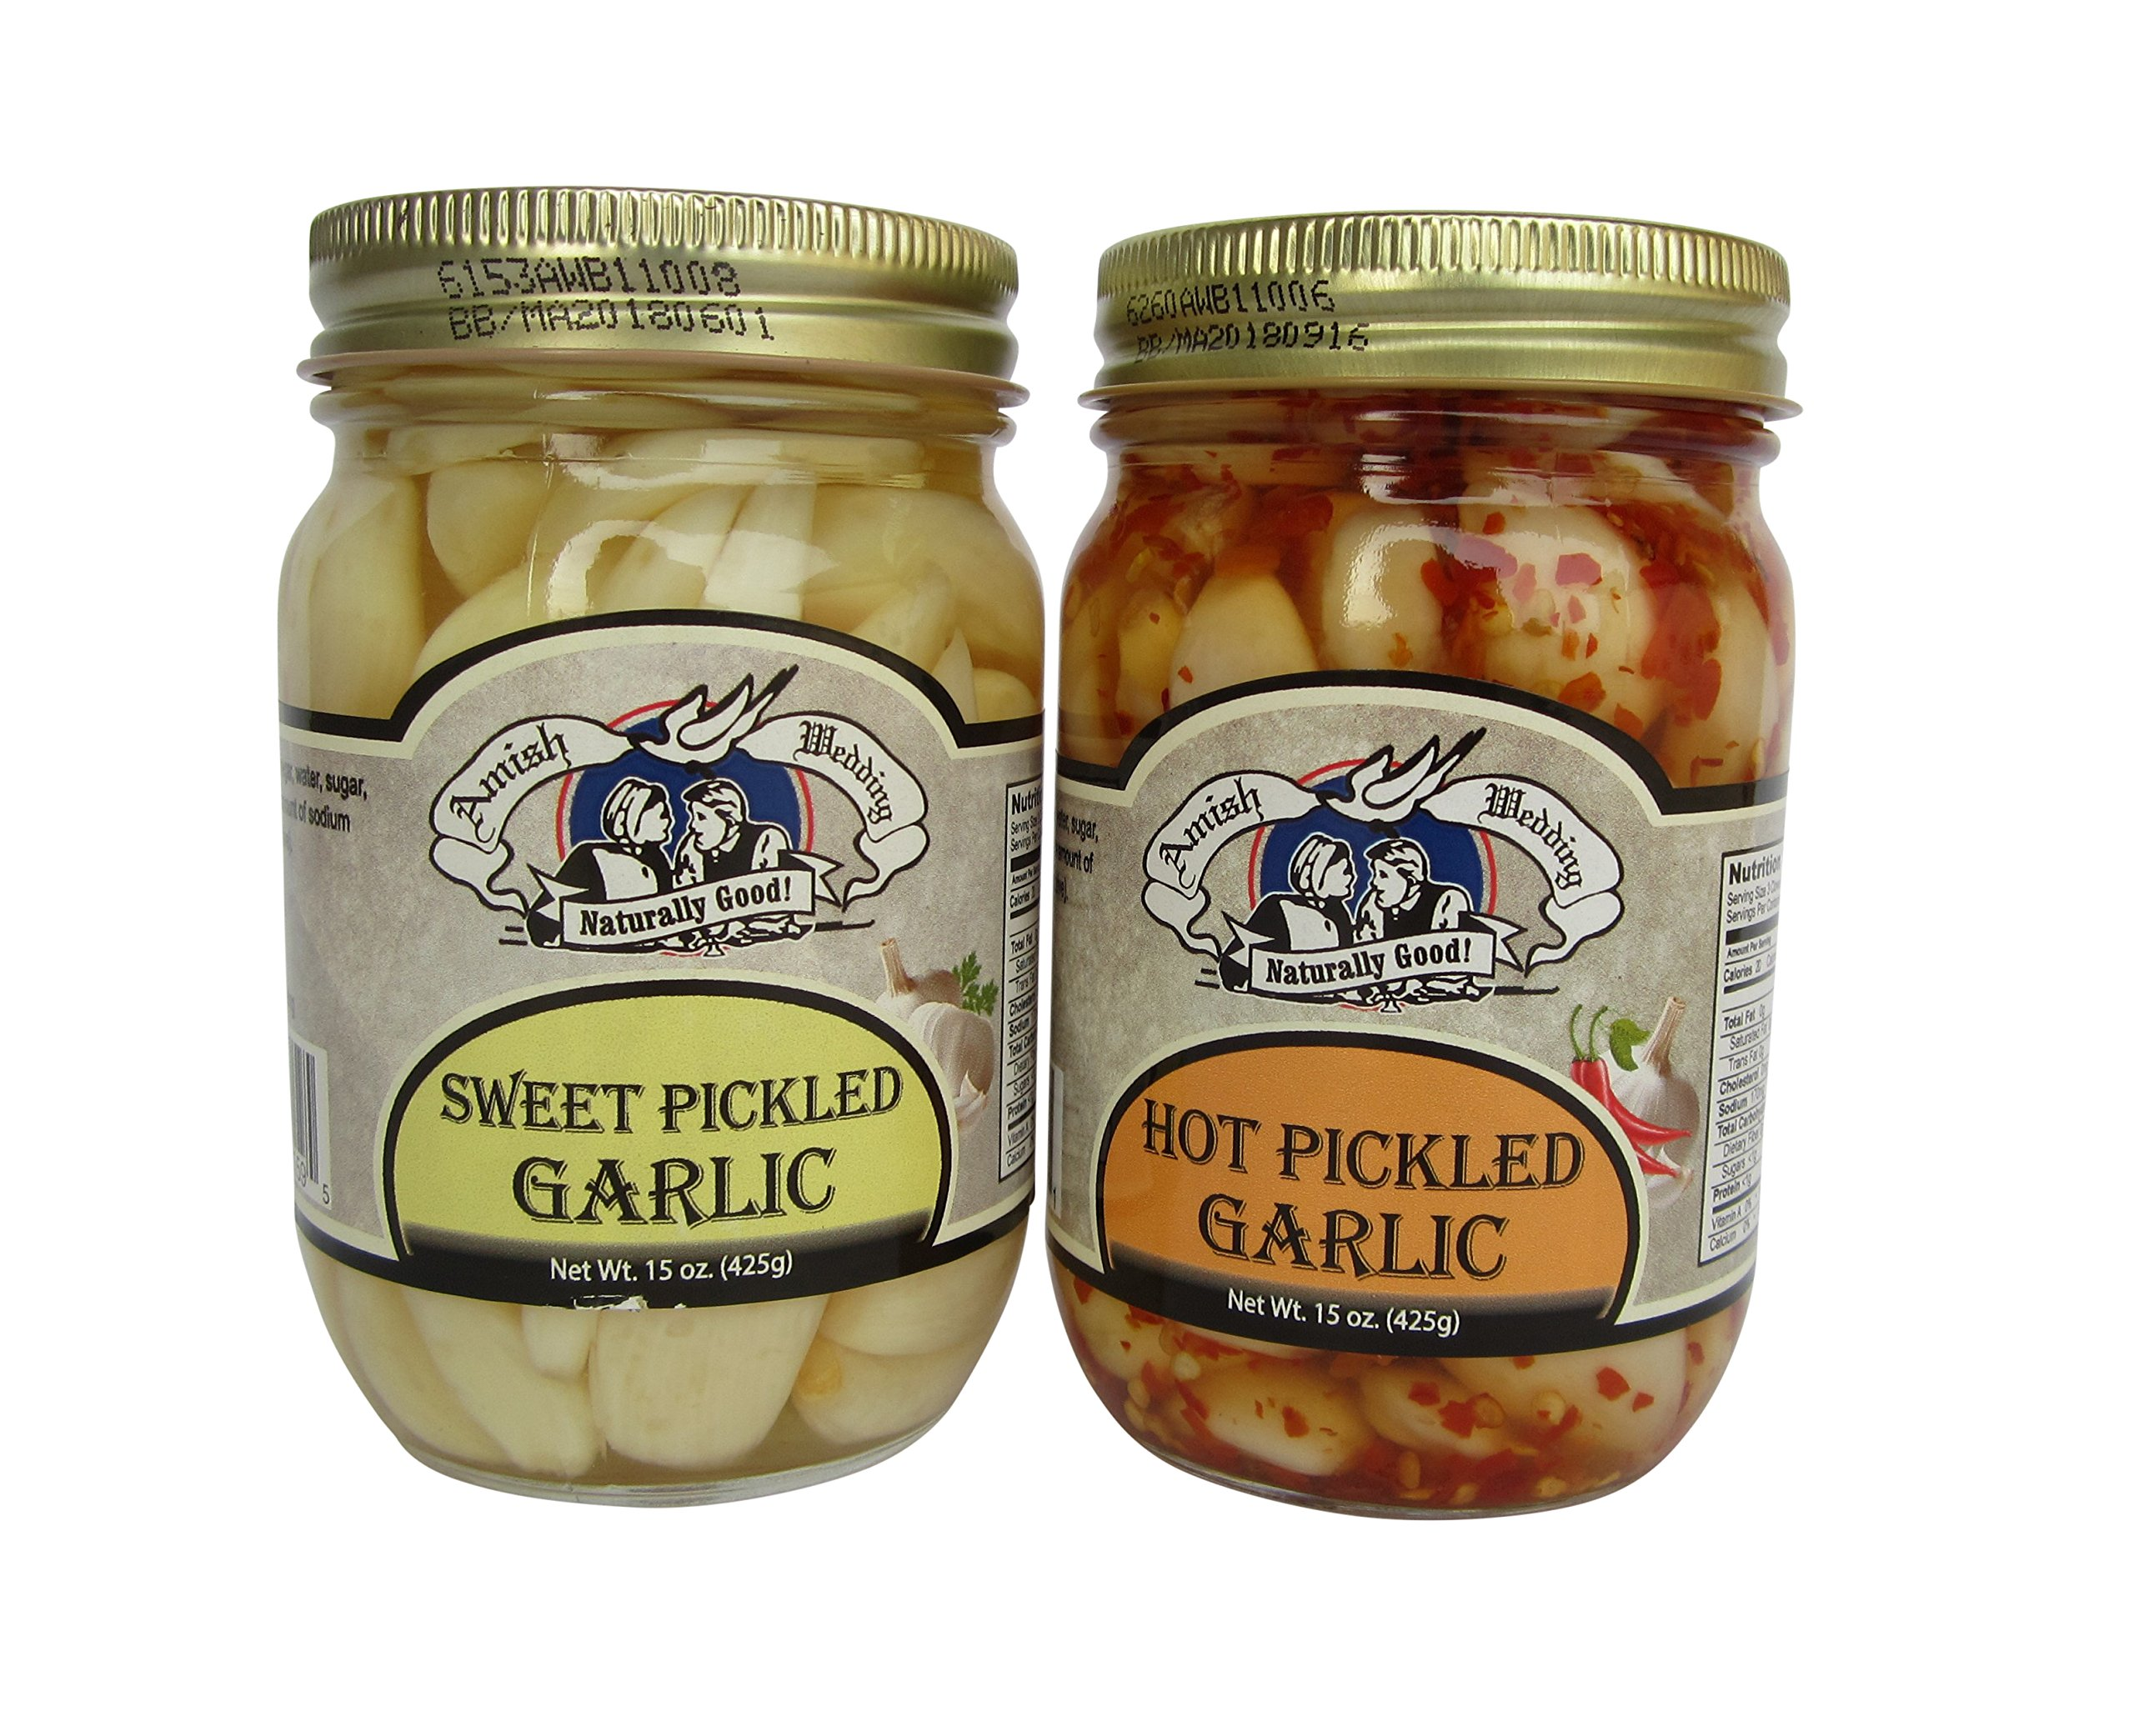 Amish Wedding Foods Hot / Sweet Pickled Garlic 2 -15 oz Jars One of Each Flavor by Amish Wedding Foods